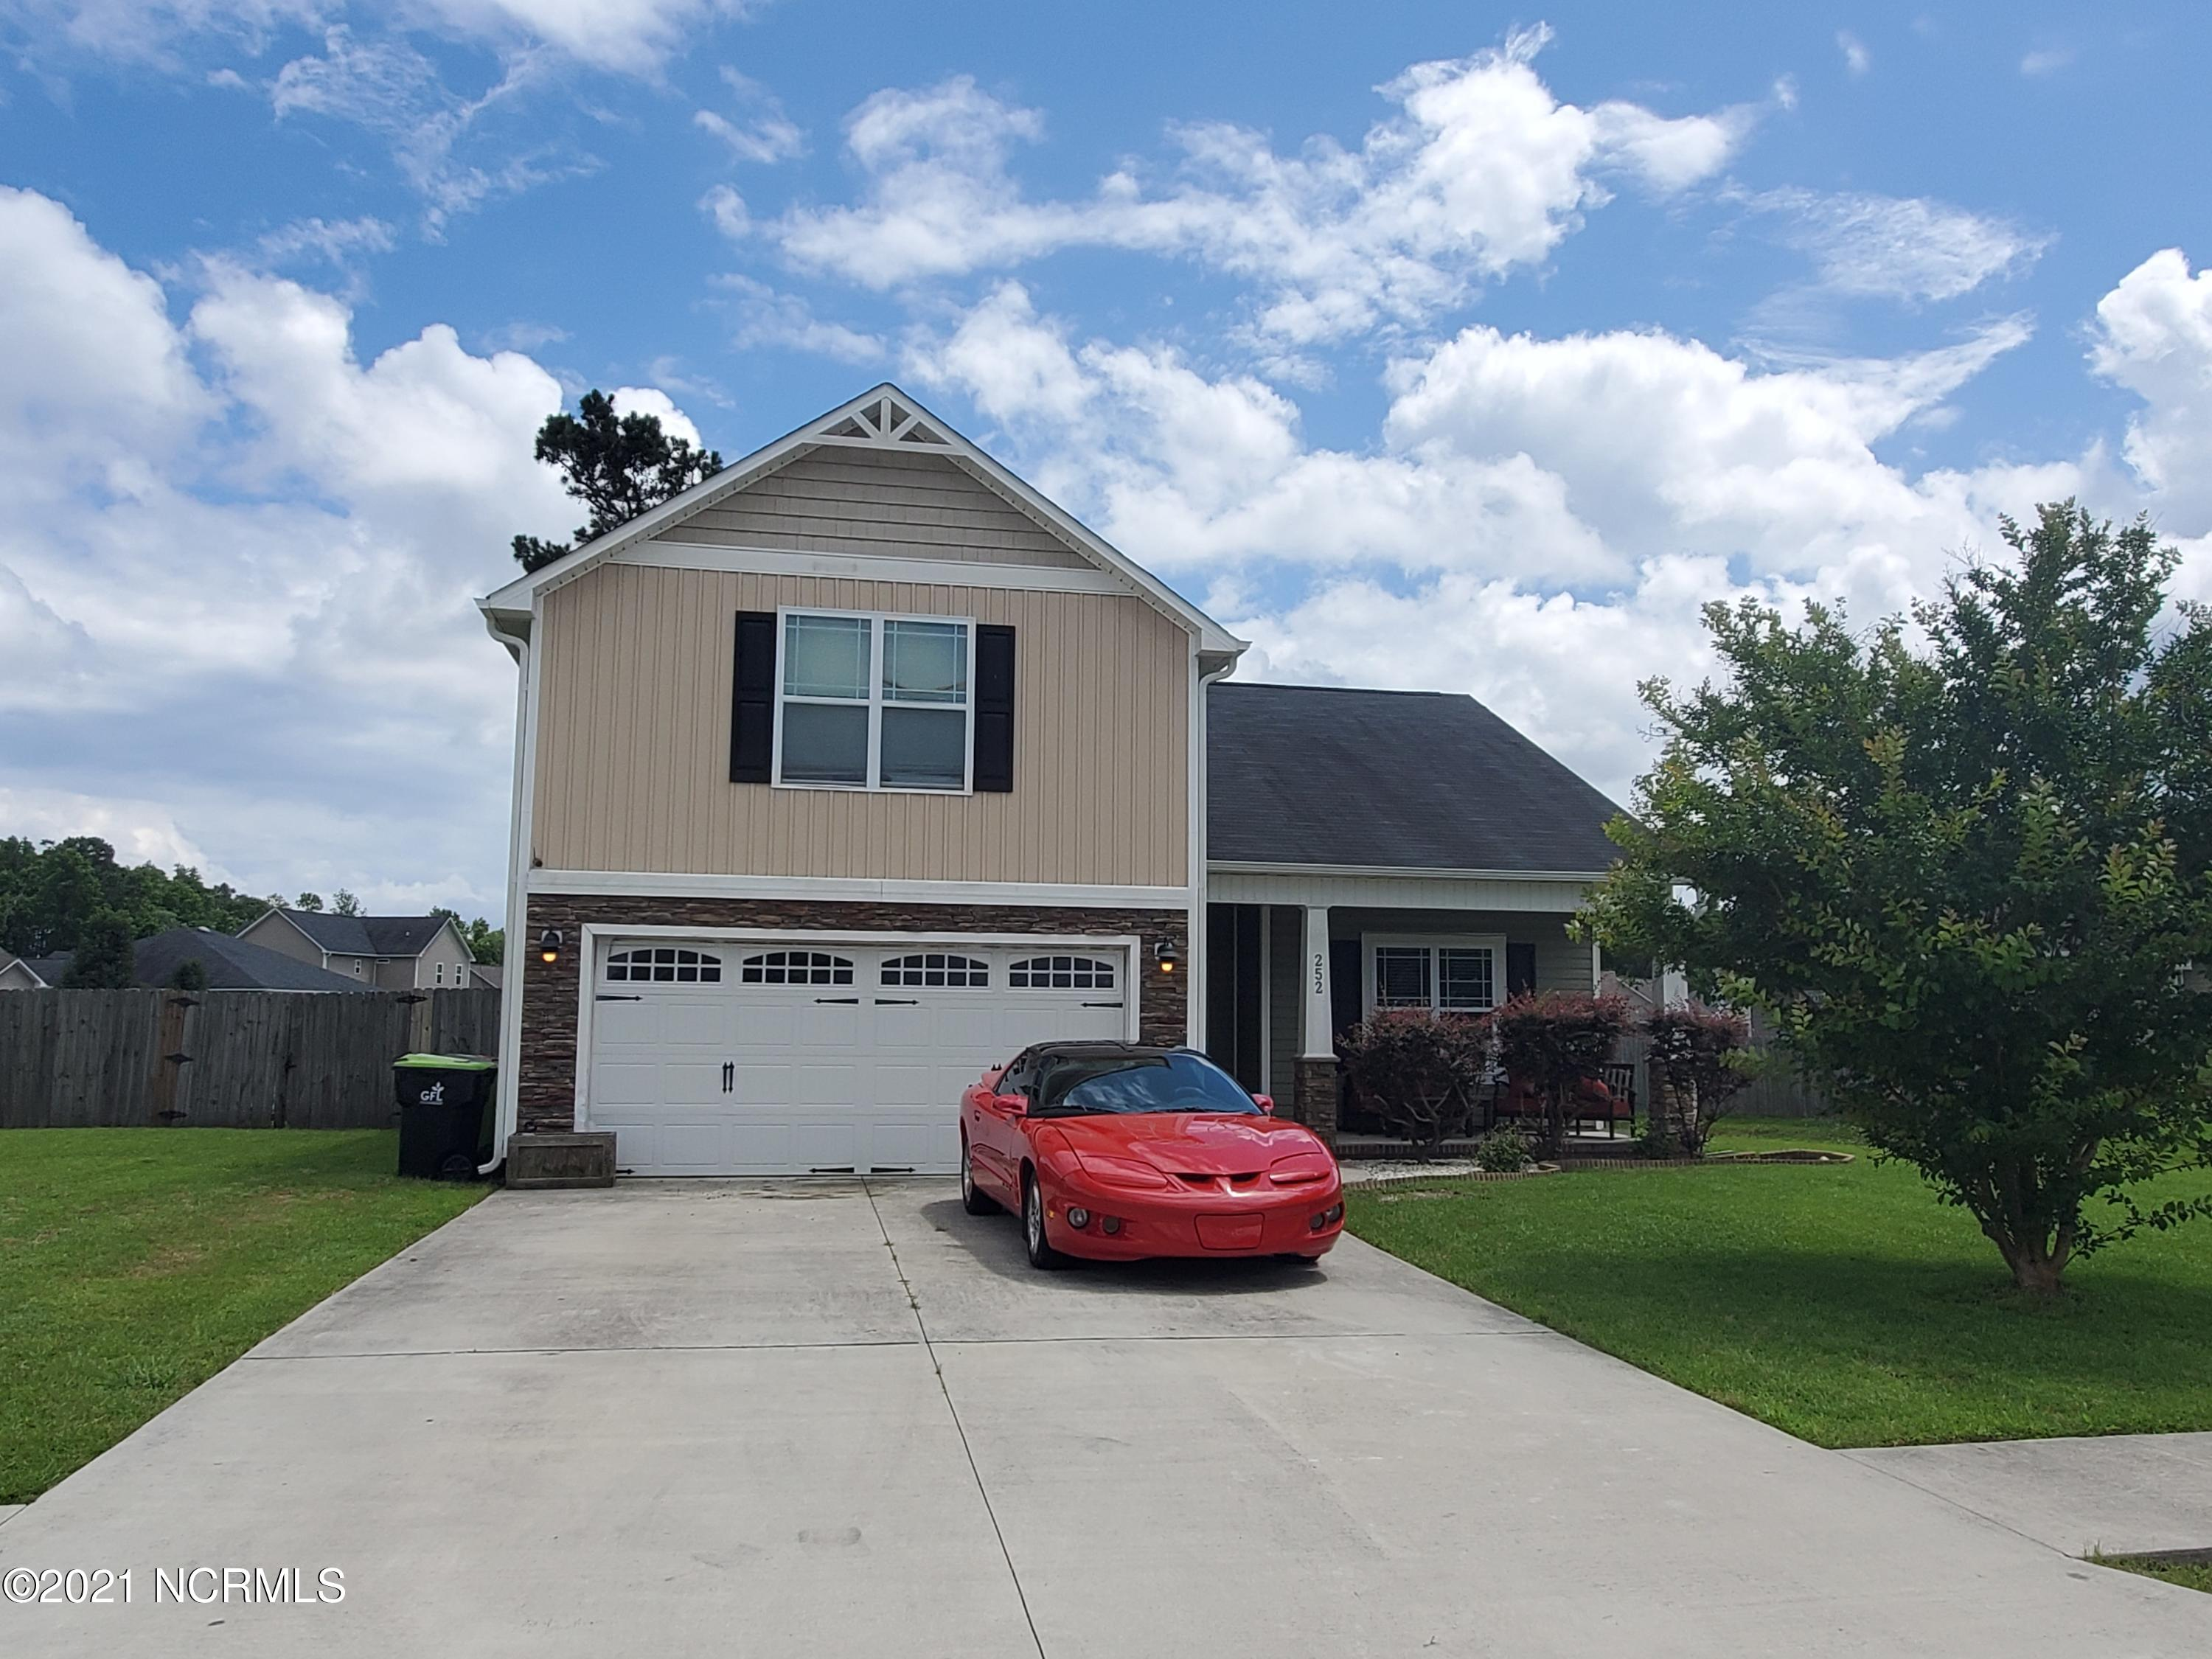 Gorgeous house in Swannsborough Acres! You enter the home into a beautiful foyer, which leads into the huge family room complete with laminate hardwood flooring and vaulted ceilings. The kitchen flows into the dining room with ease, making this open concept floor plan a great space for entertaining. You will find a spacious master suite on the first floor, as well as two additional bedrooms, and upstairs is a 4th bedroom with it's own full bath. Enjoy your time outside on your covered front or back porch. The back porch even has an additional slab off of the covered area, making it a great spot for grilling and entertaining. As if all of that wasn't enough, a brand new Trane HVAC system was just installed in 2021, and the fridge, washer, and dryer will call convey with the property! You do not want to miss this beauty, schedule your showing today!